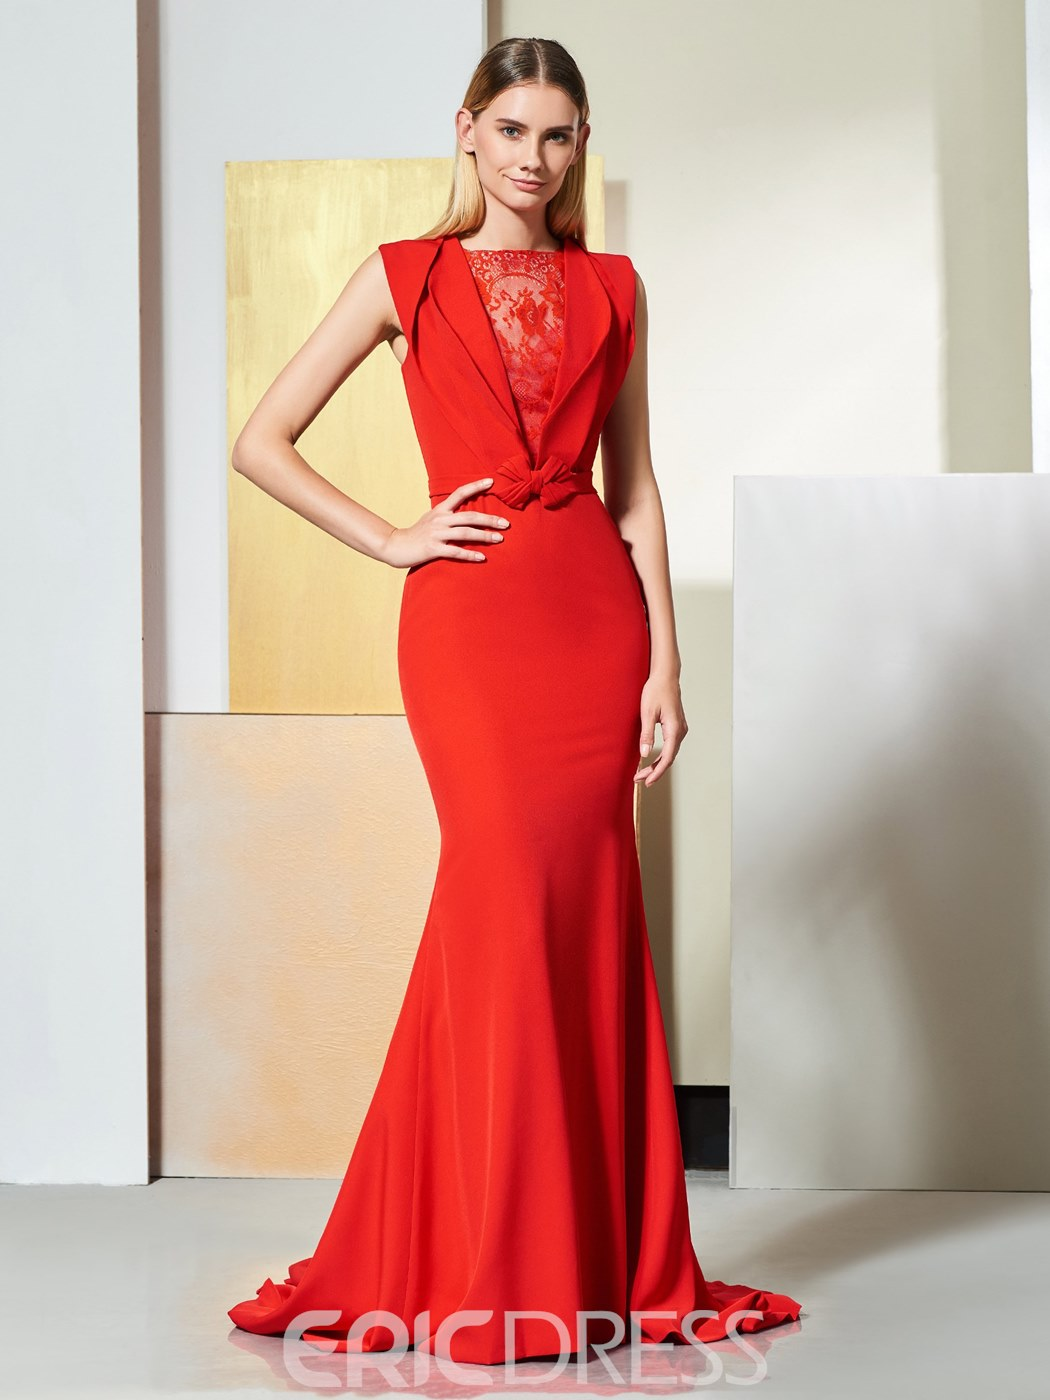 Ericdress Elegant Red Mermaid Evening Dress With Sweep Train ...